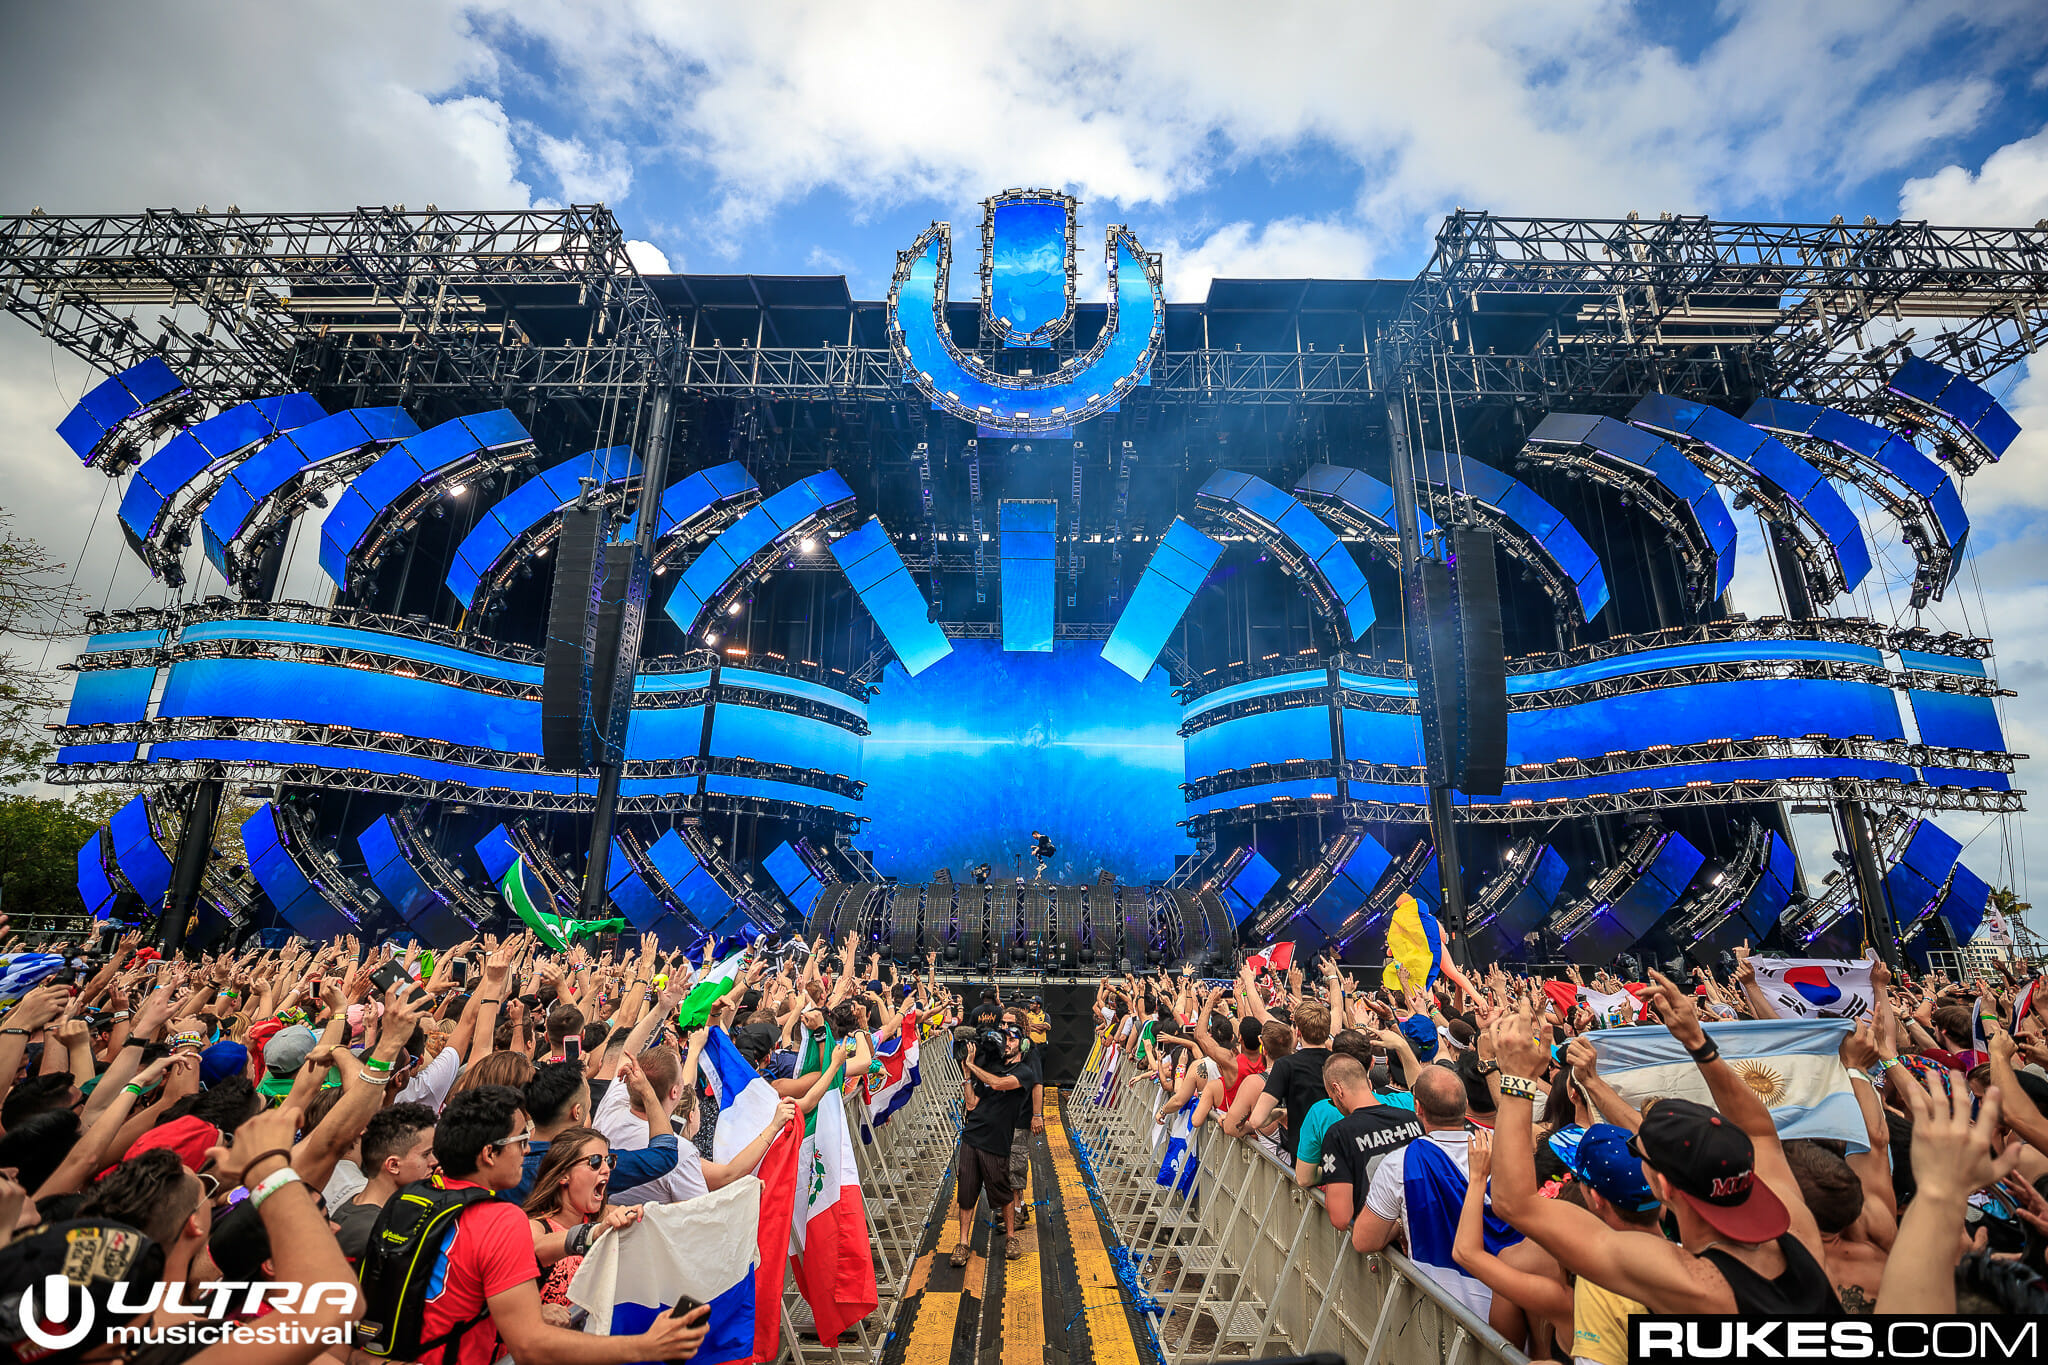 Ultra will extend 'Mission: Home' environmental sustainability initiativeUmf17a 023